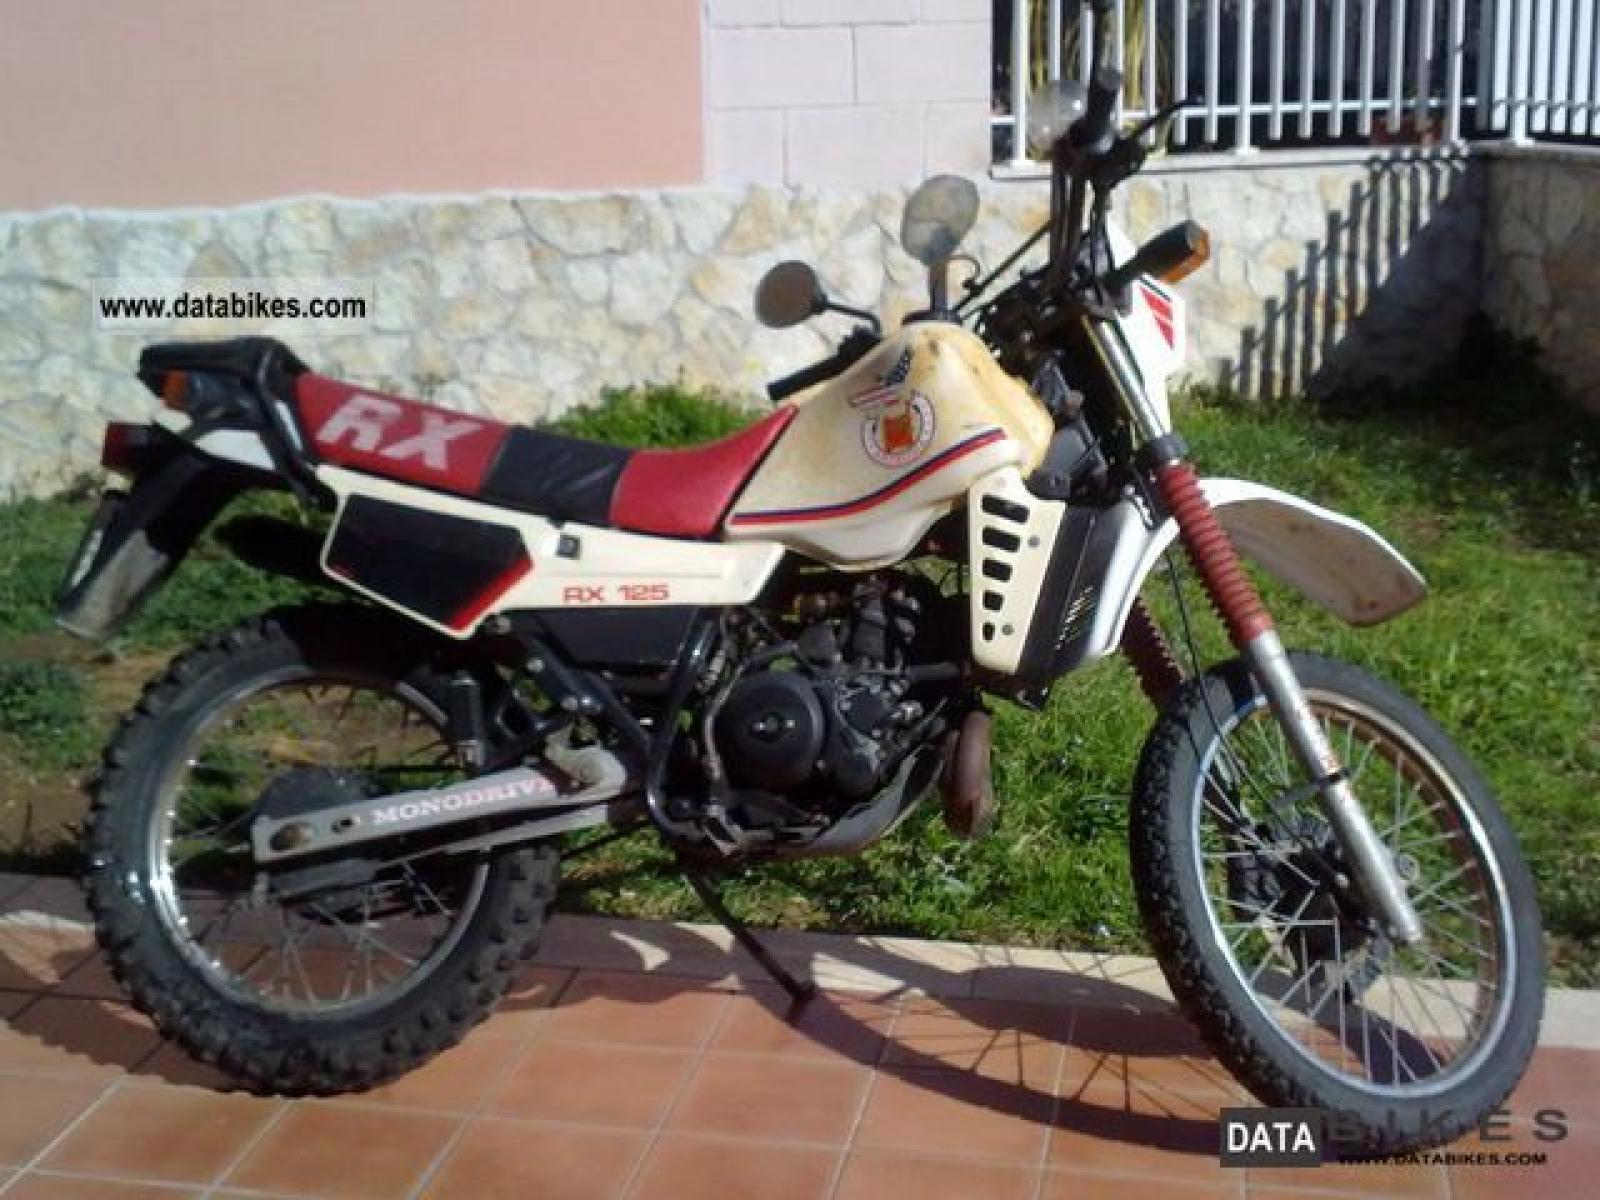 Gilera RX 125 Arizona 1985 images #73259